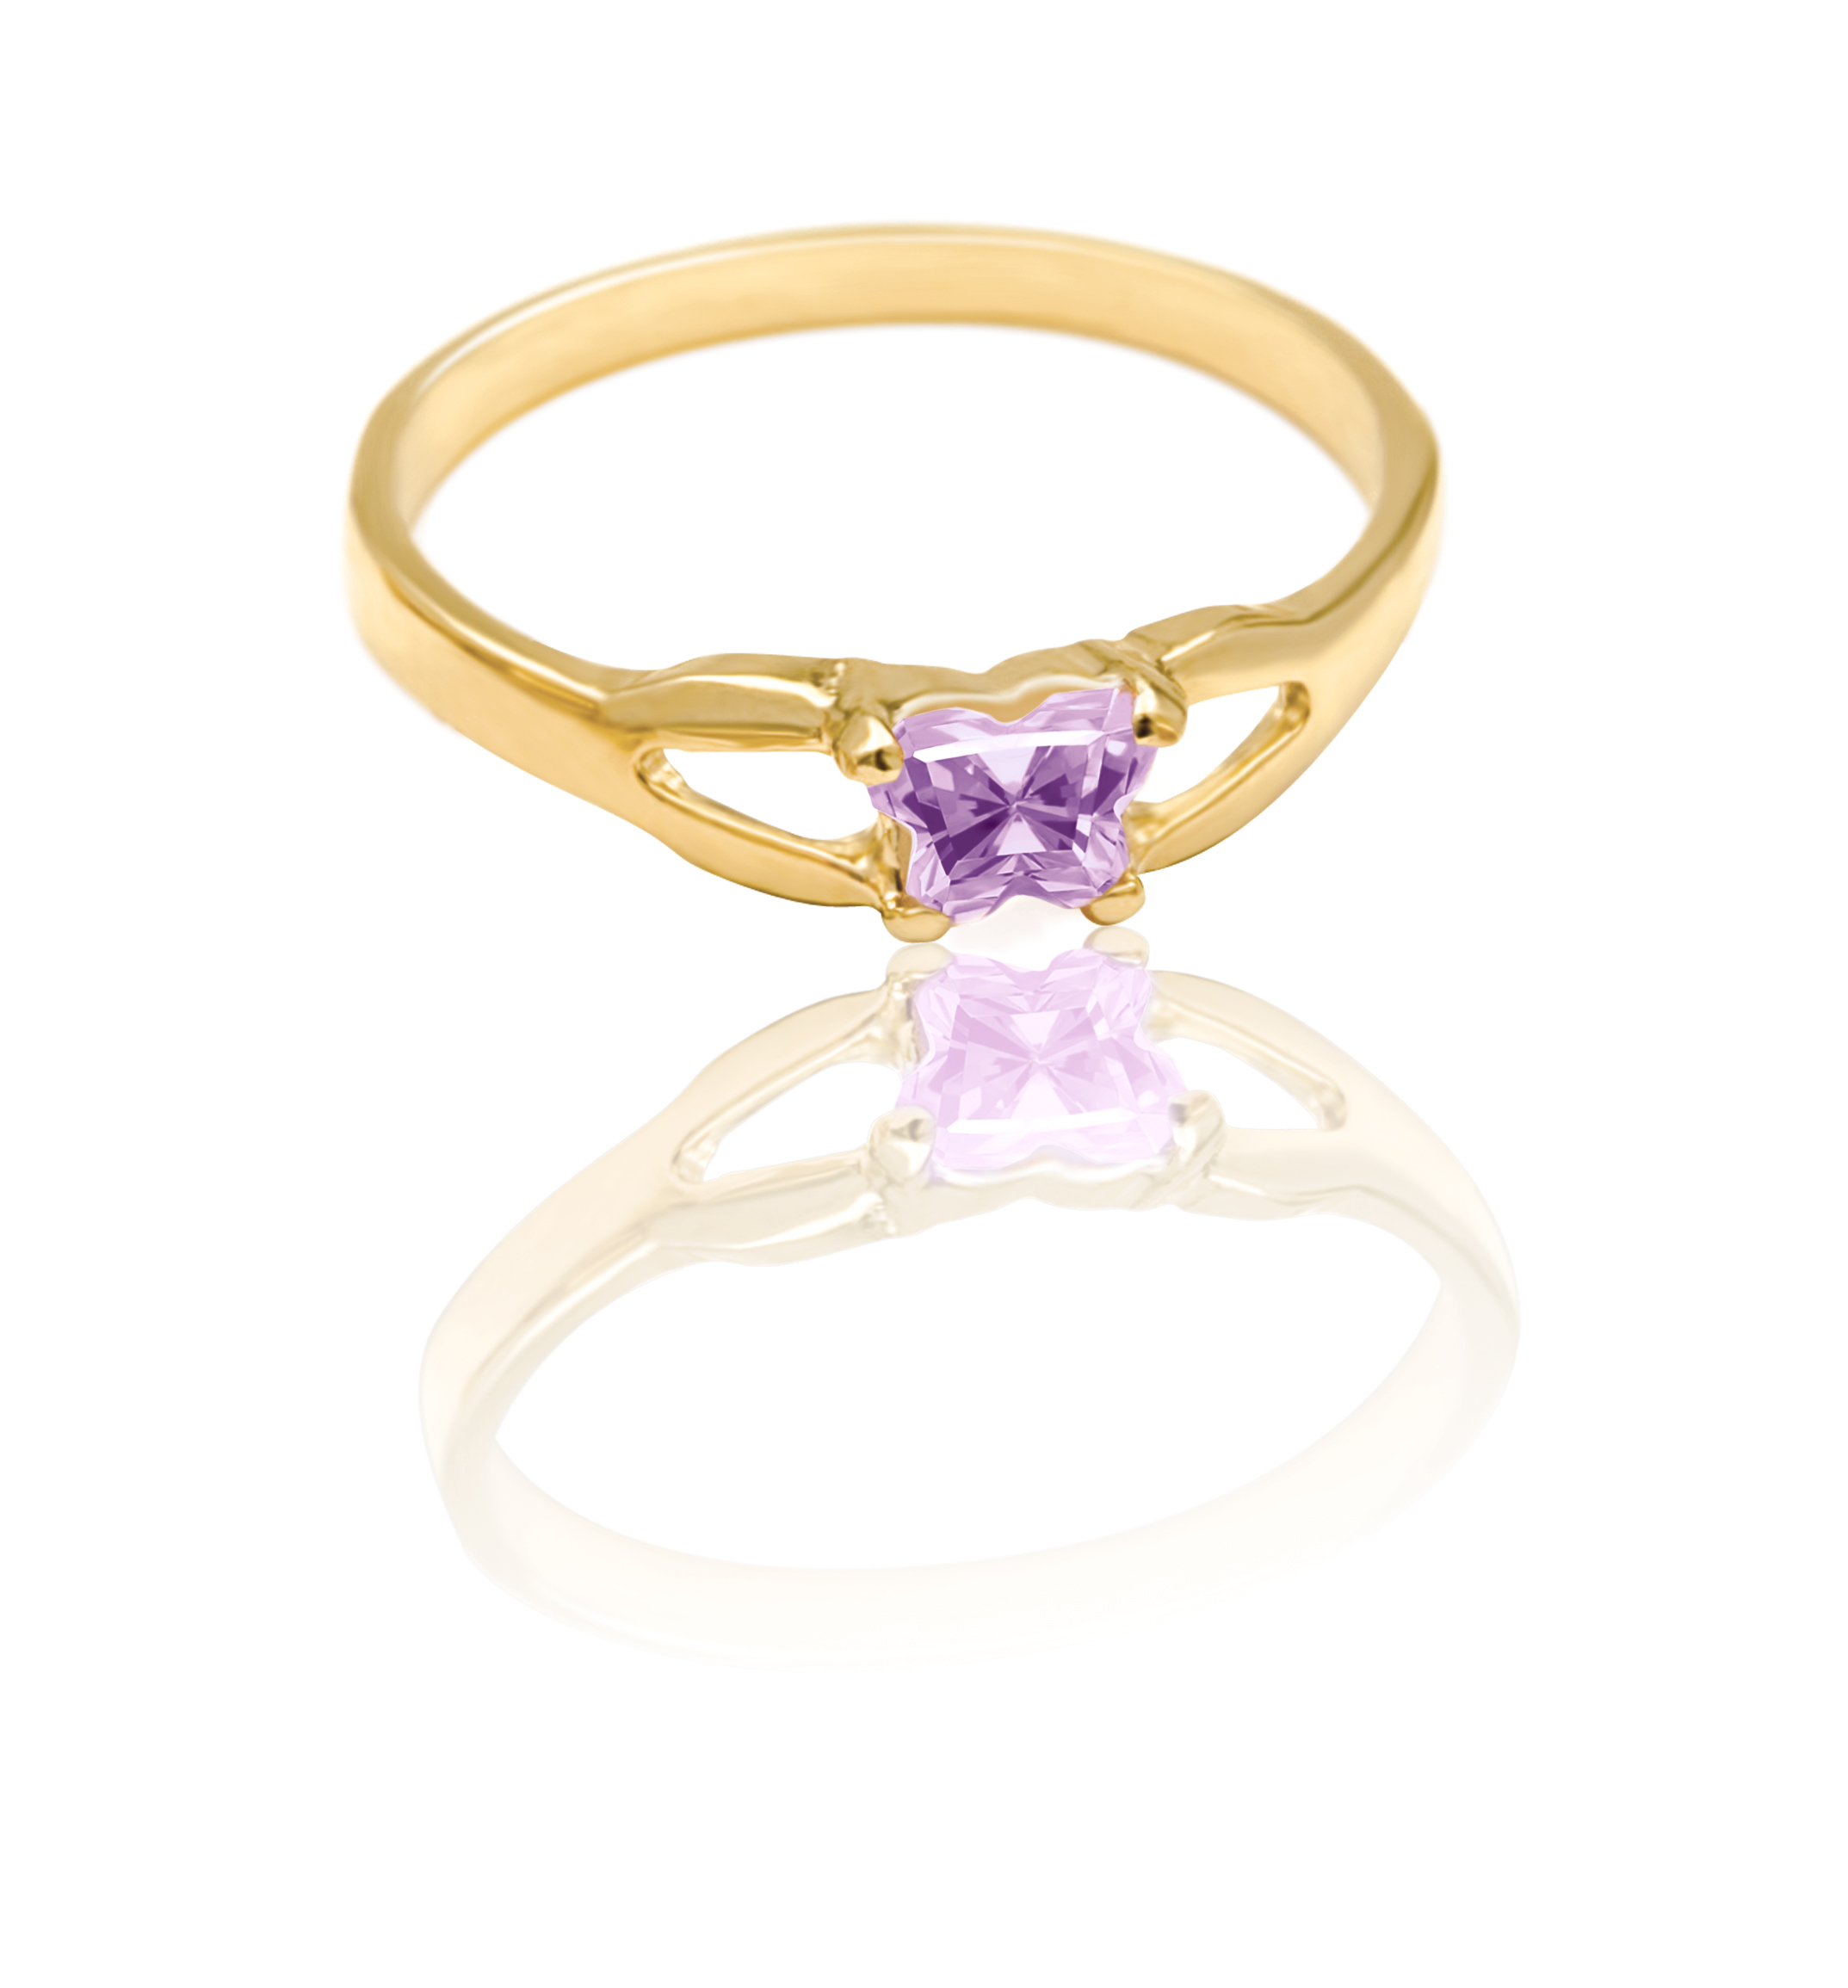 ring for child - 10K yellow Gold & Light purple cubic zirconia (month of June)*